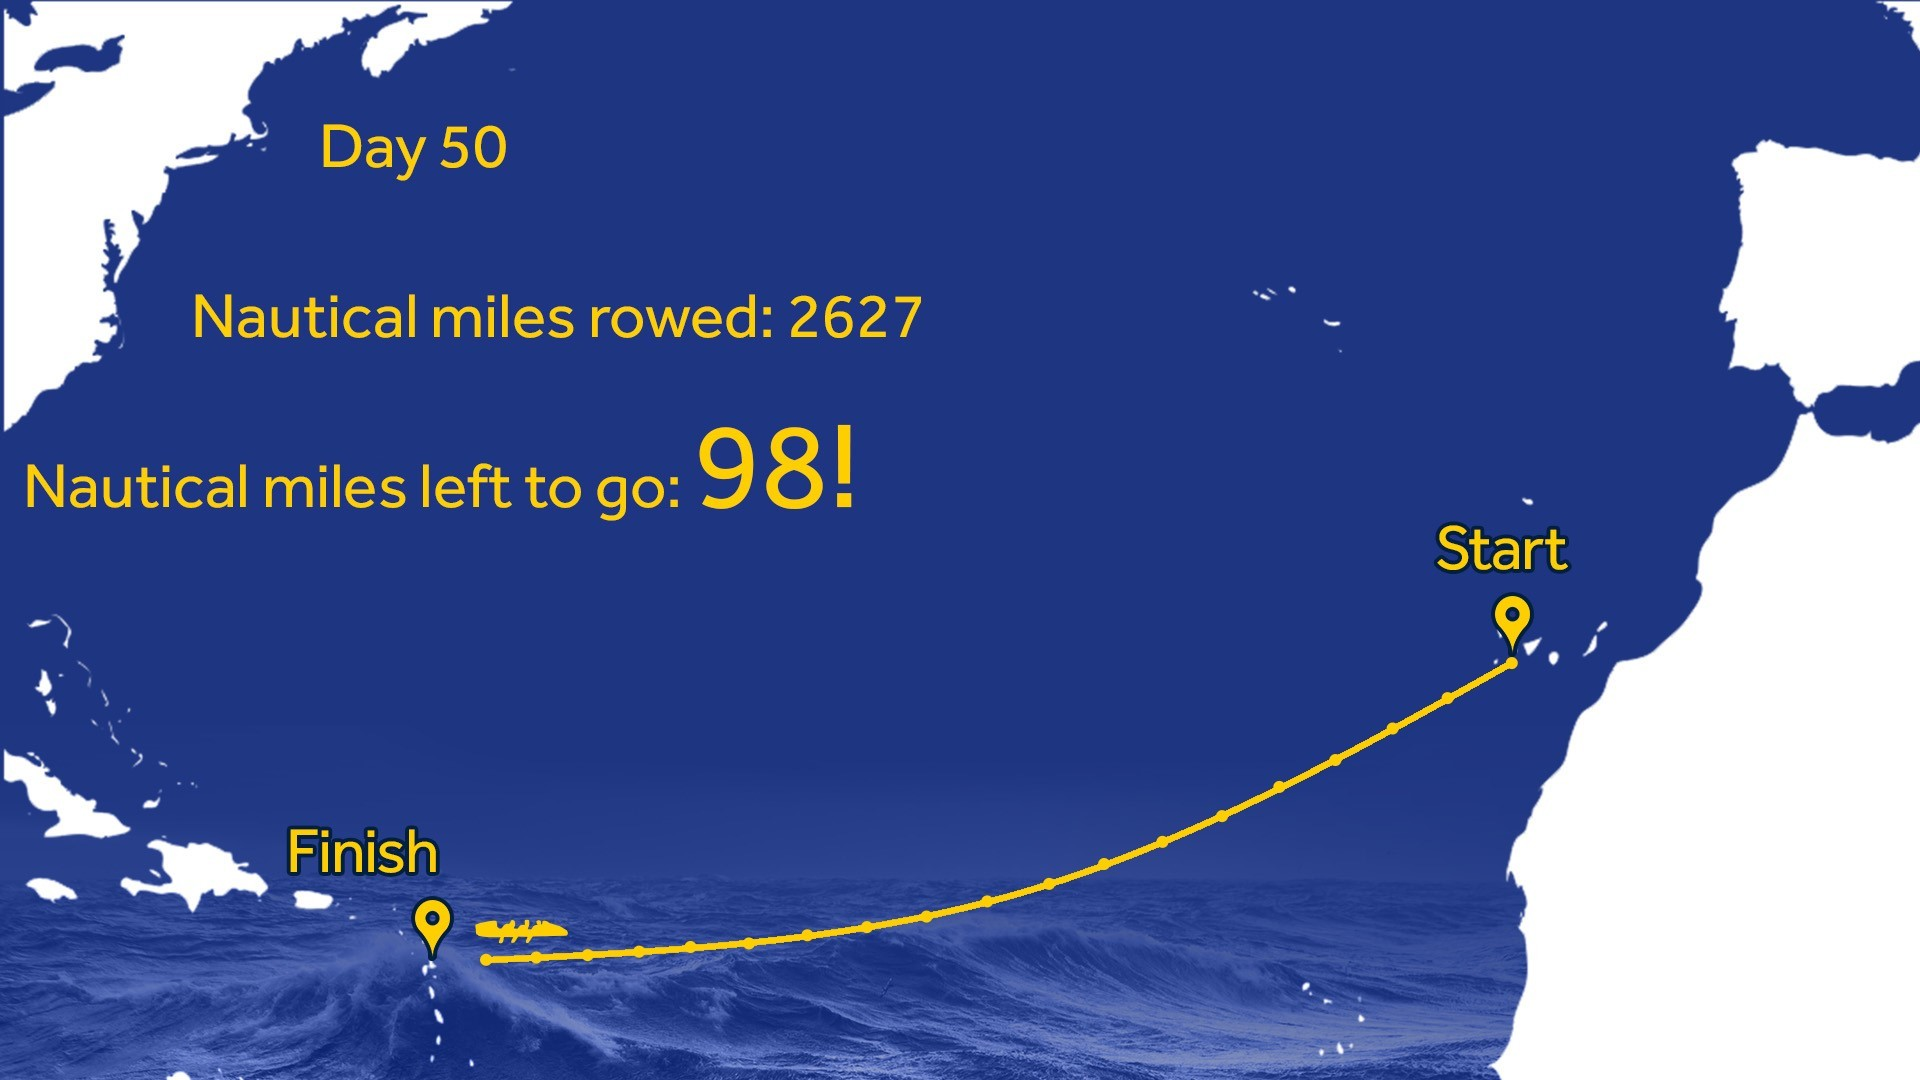 Heads Together and Row: Under 100 nautical miles to go!